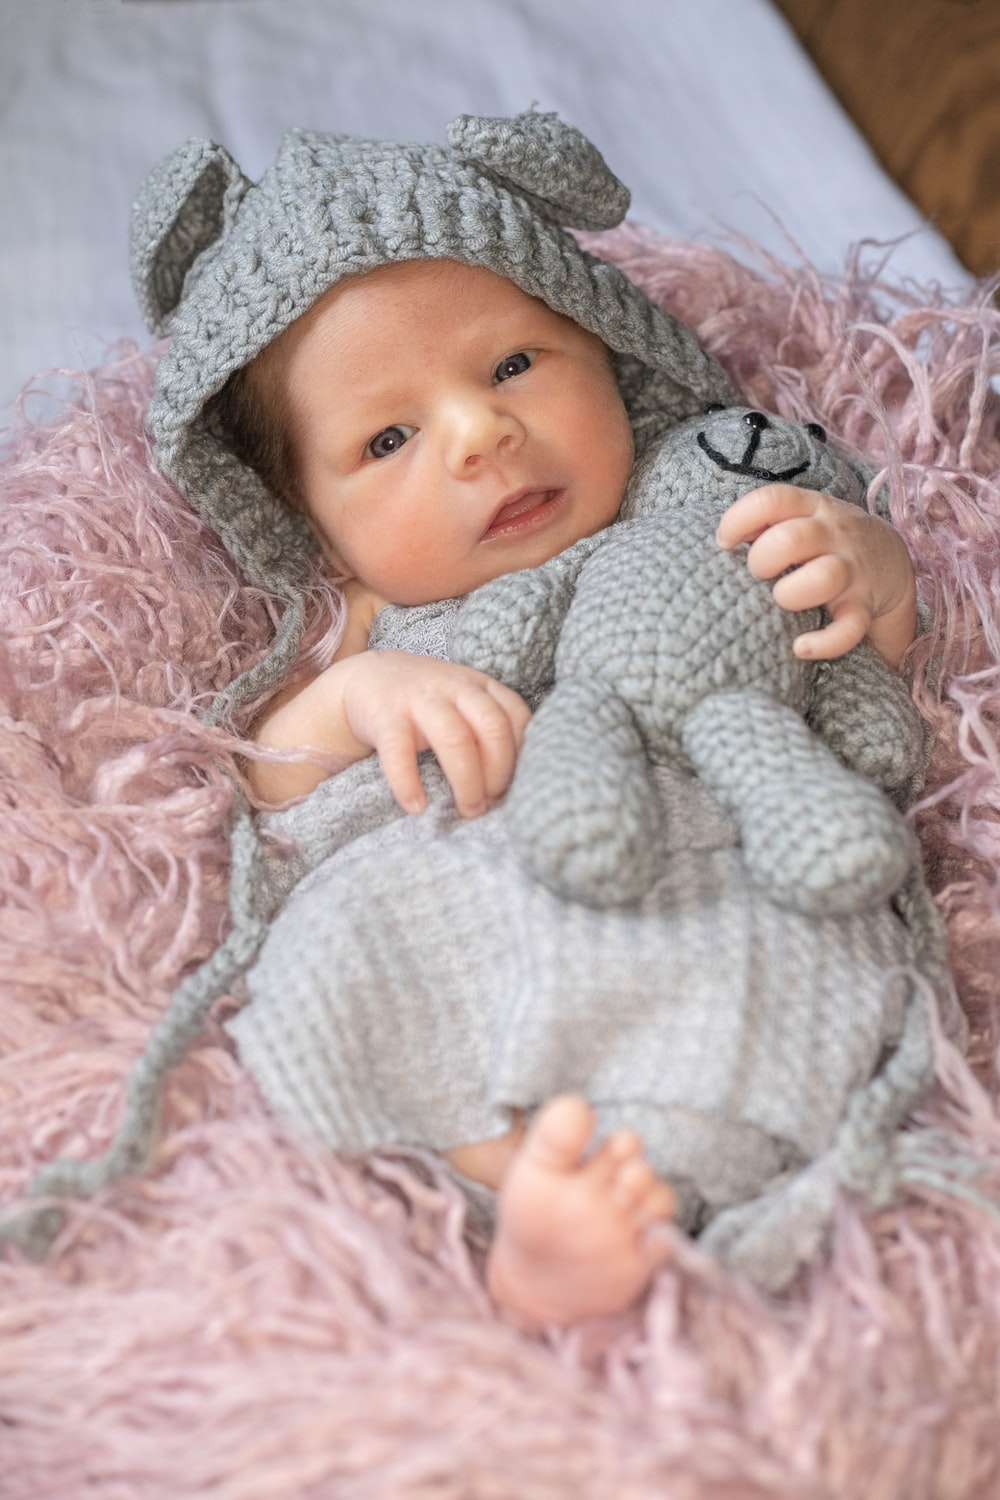 baby in white knit sweater lying on pink textile